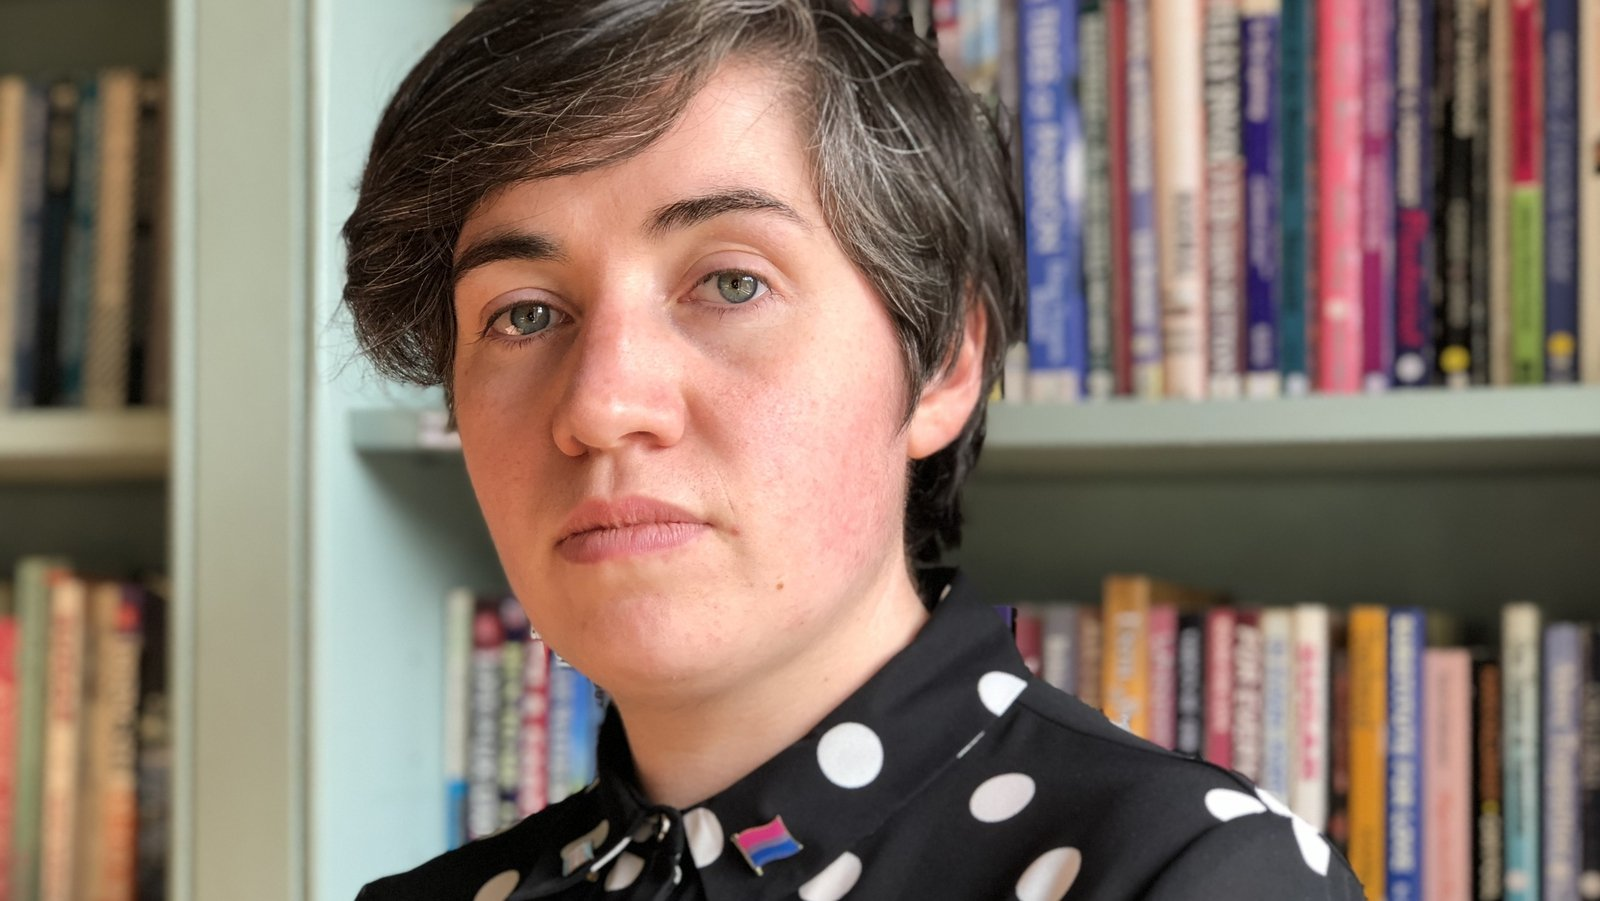 Image - Clodagh Leonard, from Co Mayo, a member of the LGBTQ community